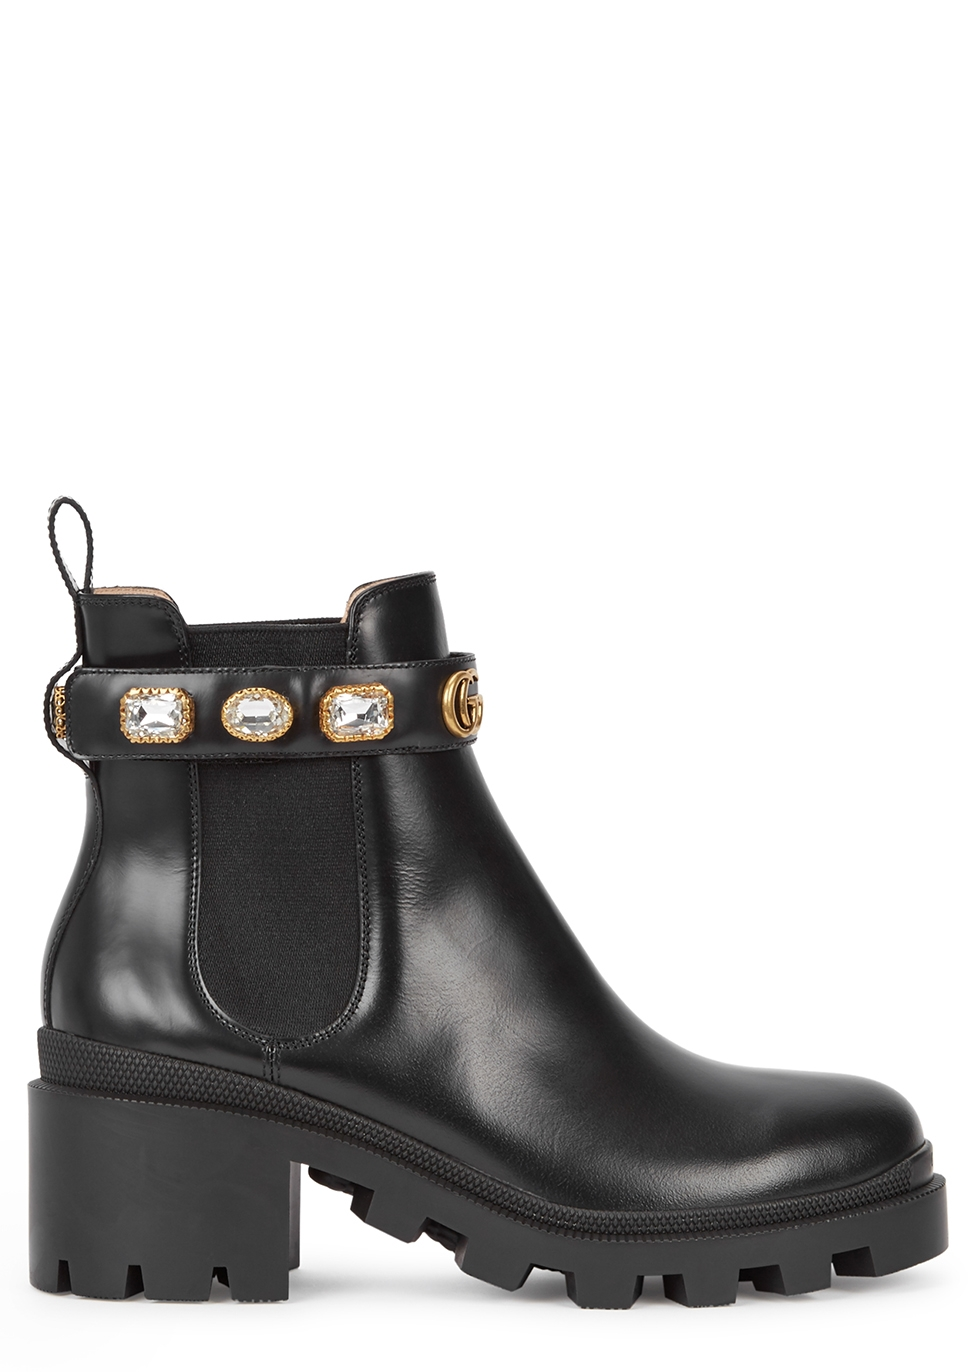 75 embellished leather Chelsea boots